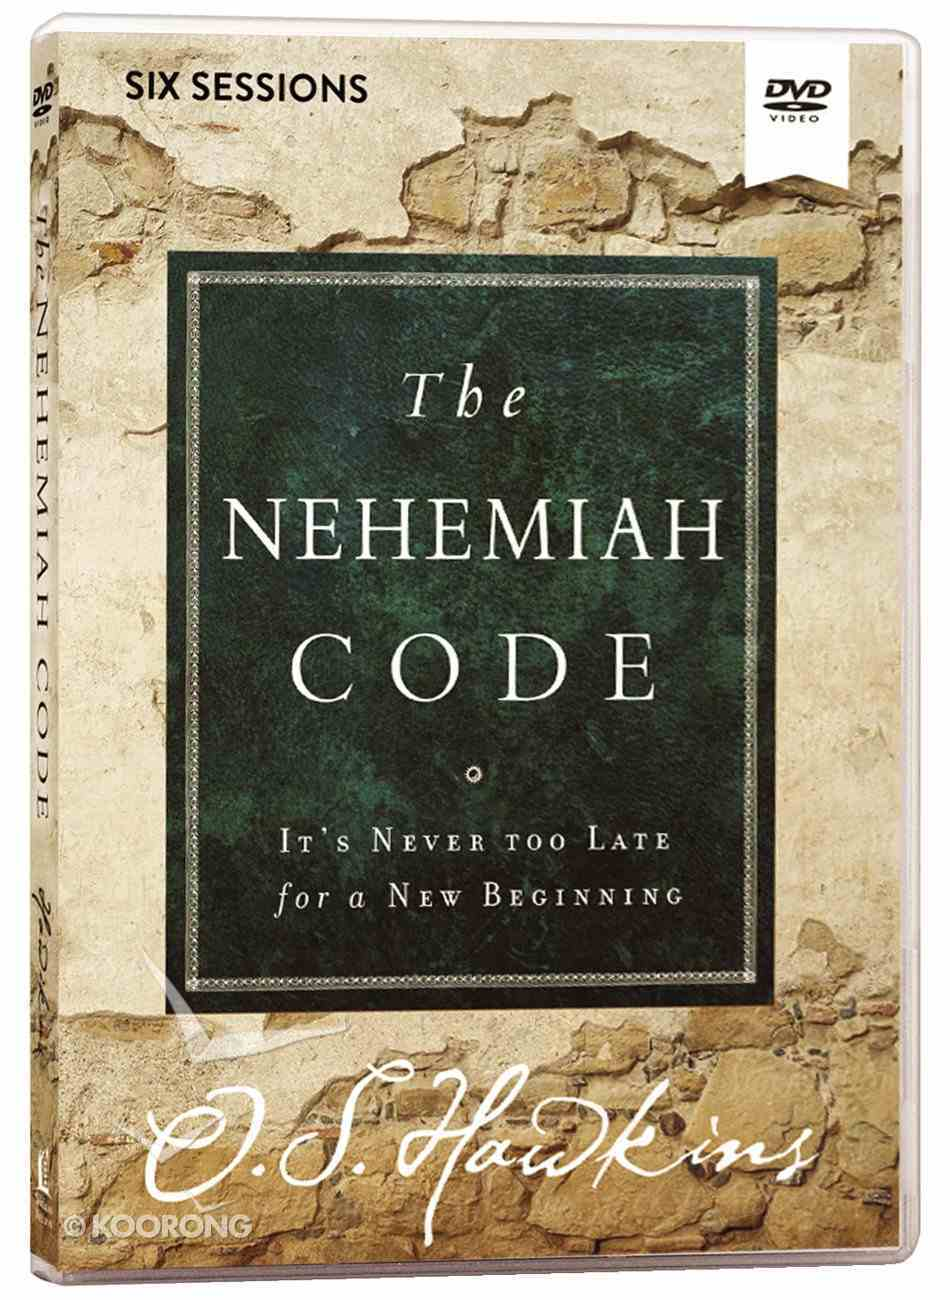 The Nehemiah Code: It's Never Too Late For a New Beginning (Video Study) DVD